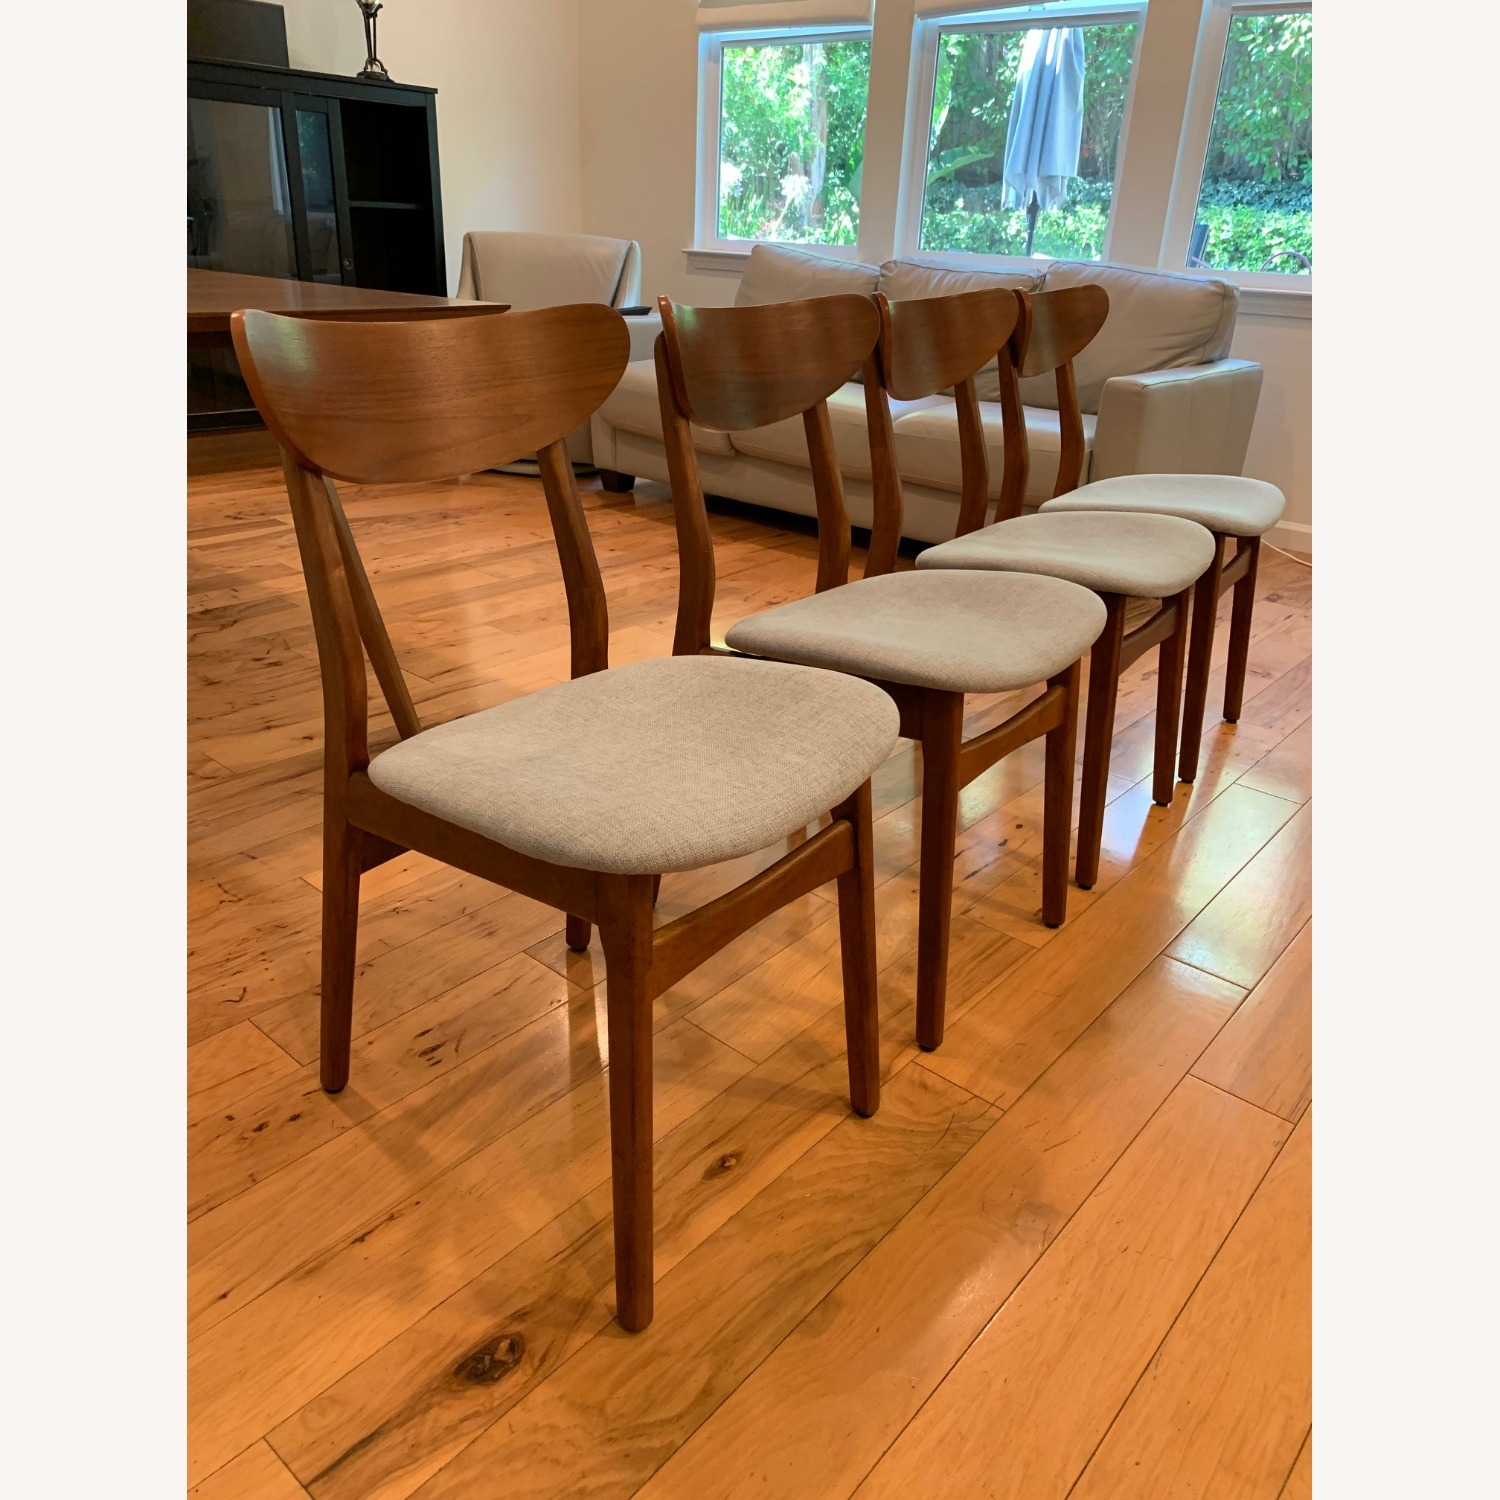 West Elm Classic Cafe Dining Chair(s) - image-1